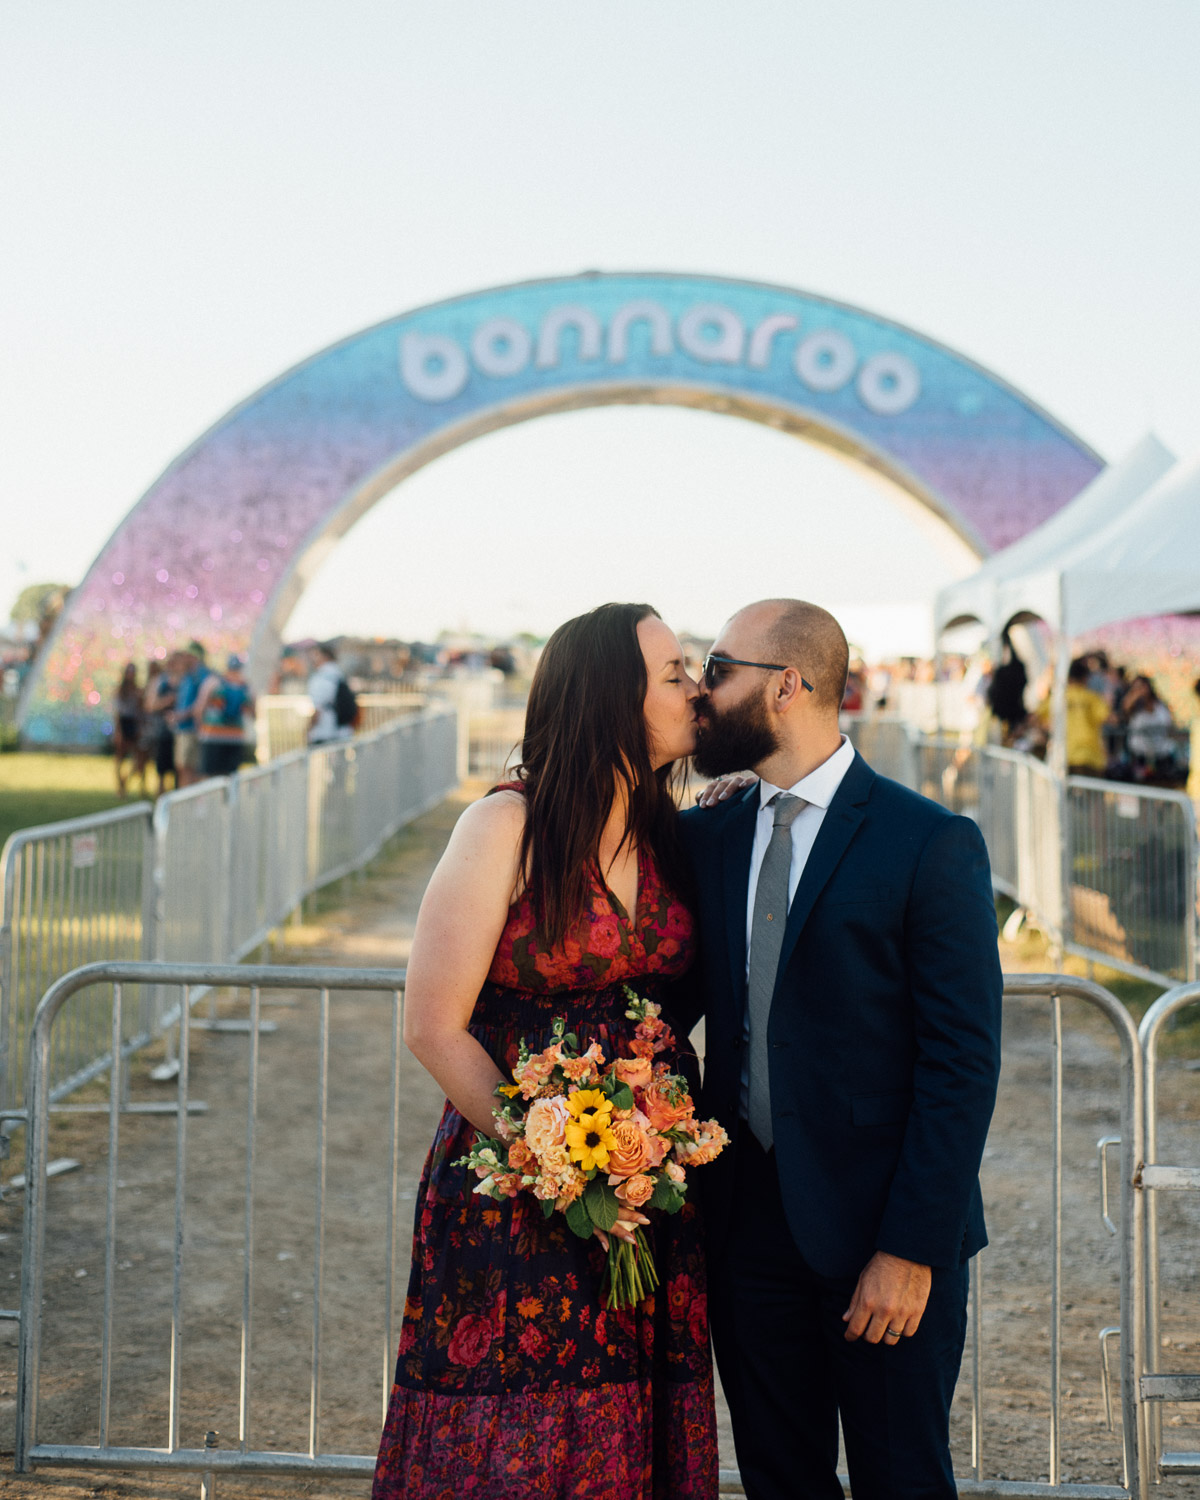 bonnaroo-arch-kiss Bonnaroo Music Festival Wedding | James and Jen